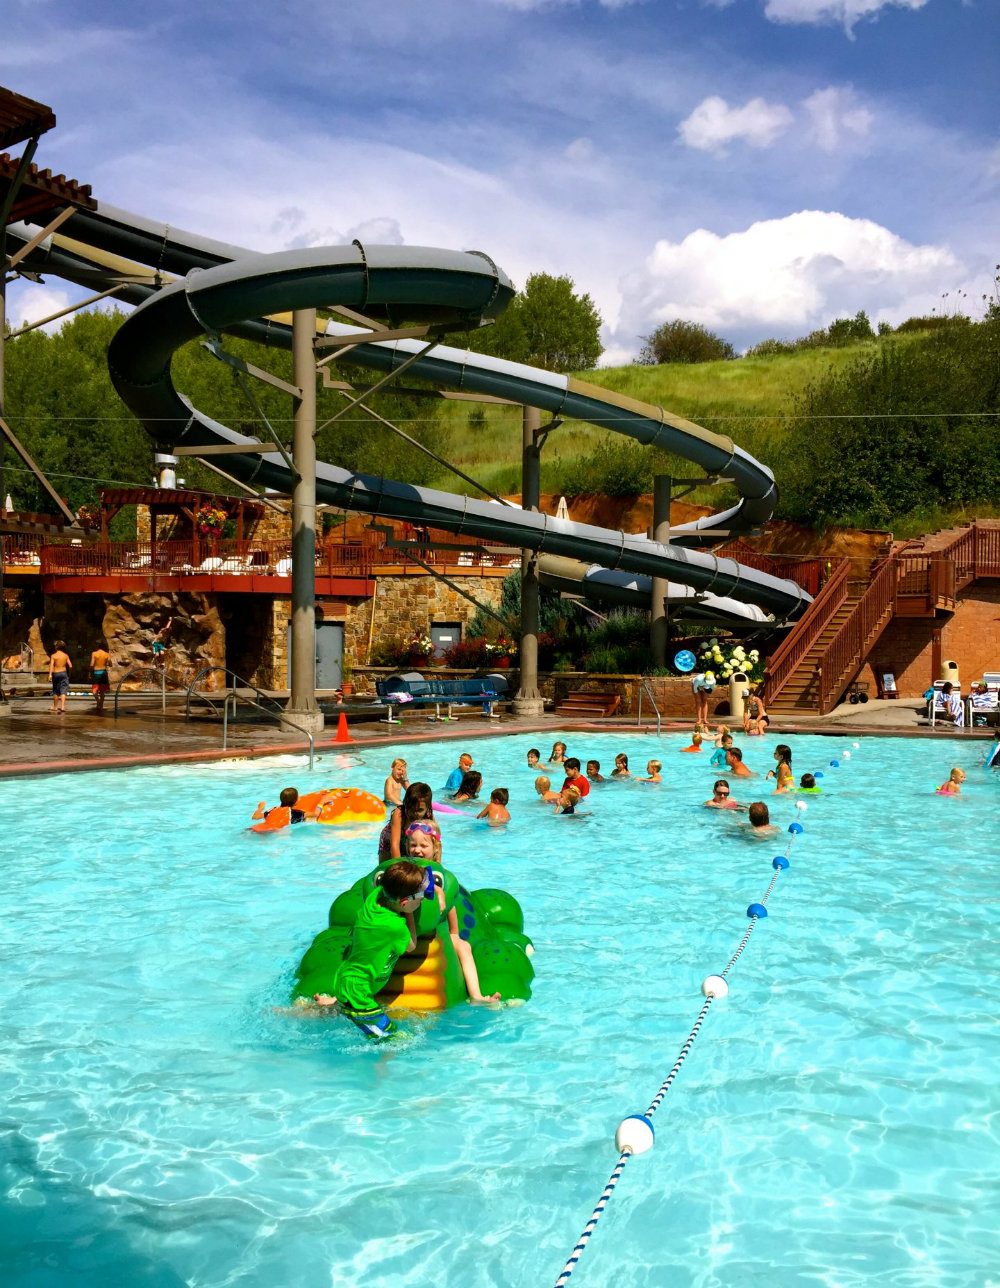 Water slide at Old Town Hot Springs in Steamboat Springs, CO.